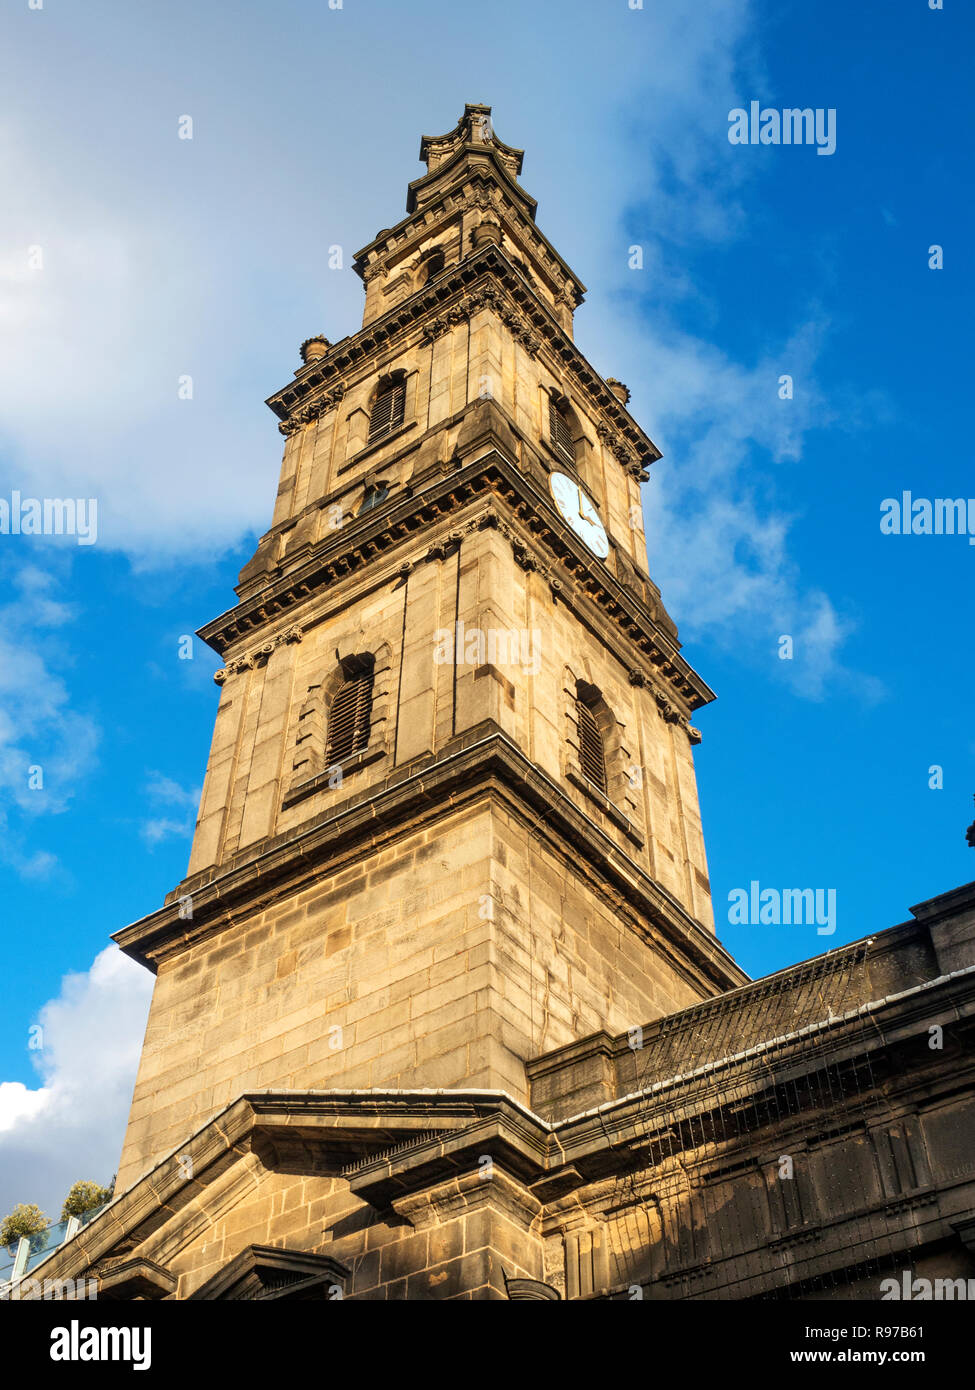 Holy Trinity Church Steeple Boar Lane Leeds West Yorkshire England - Stock Image